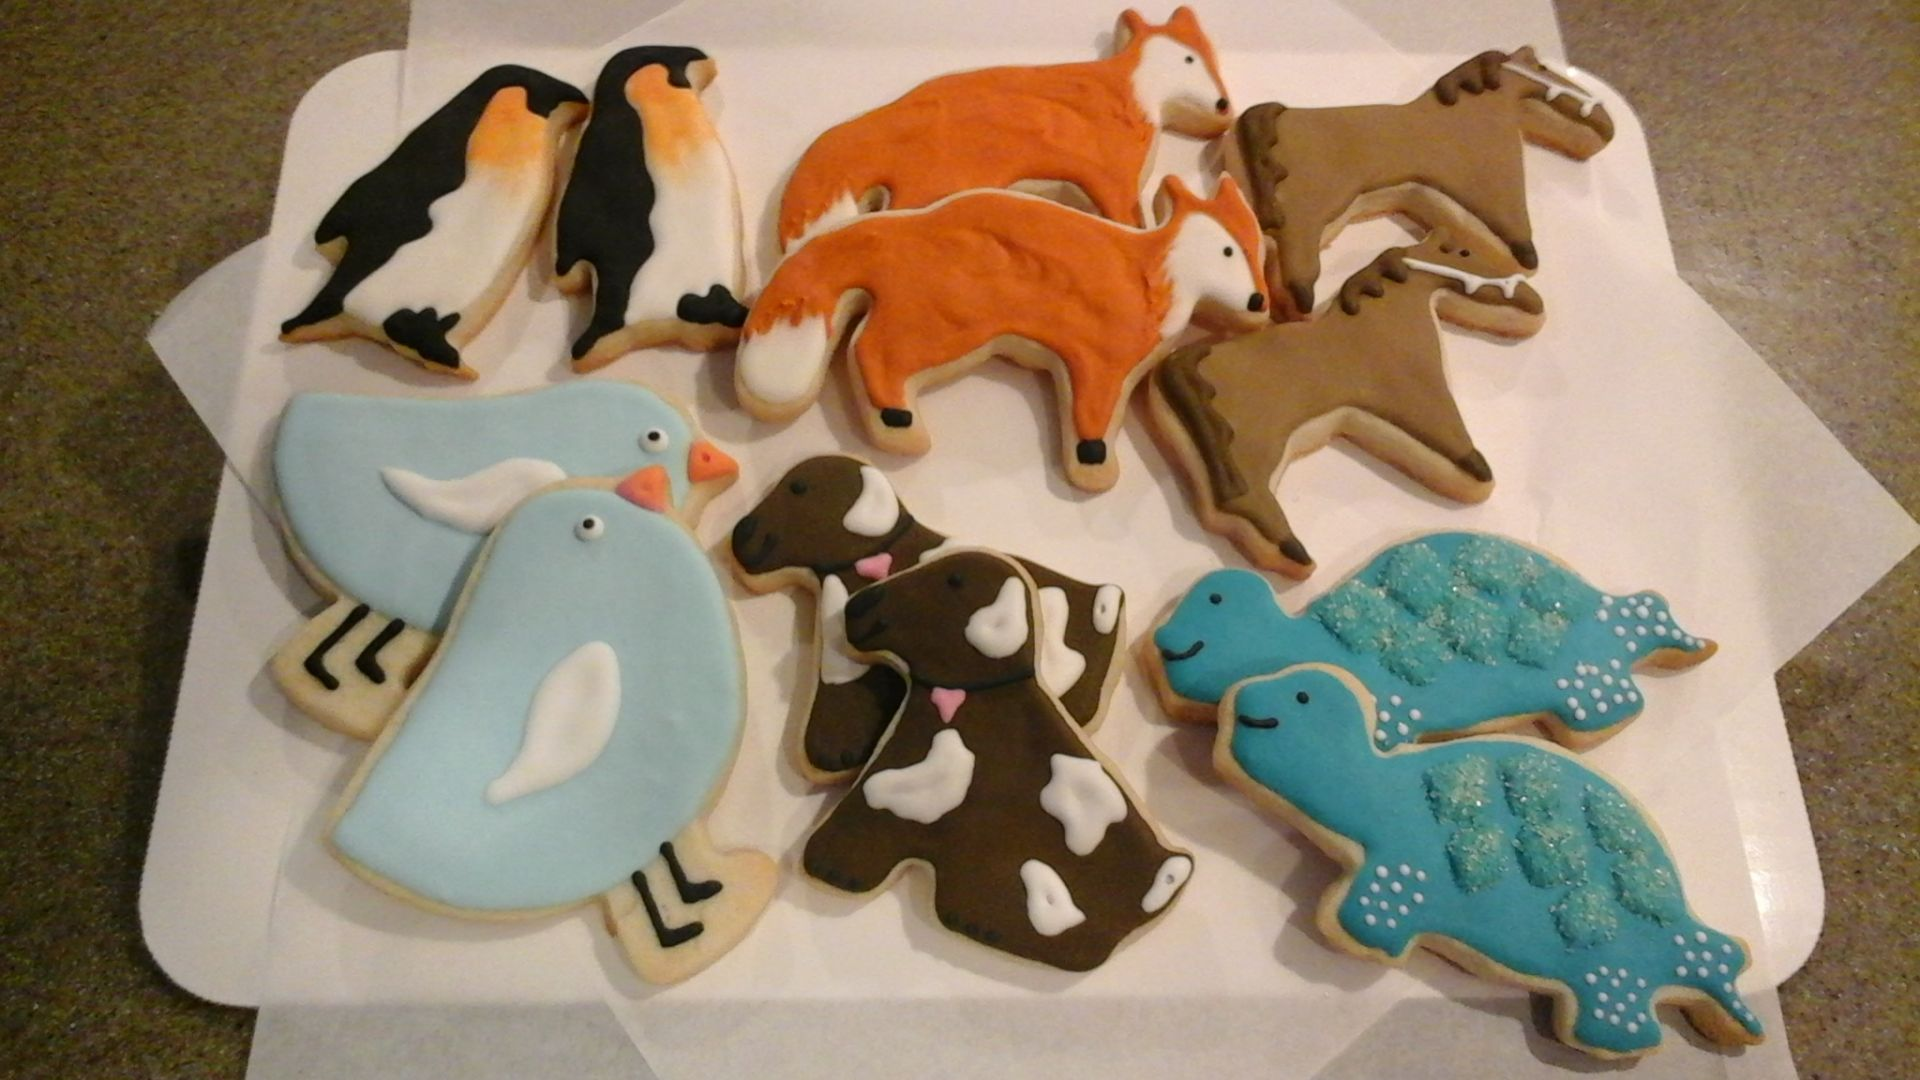 Animal Cookie Cut-Outs